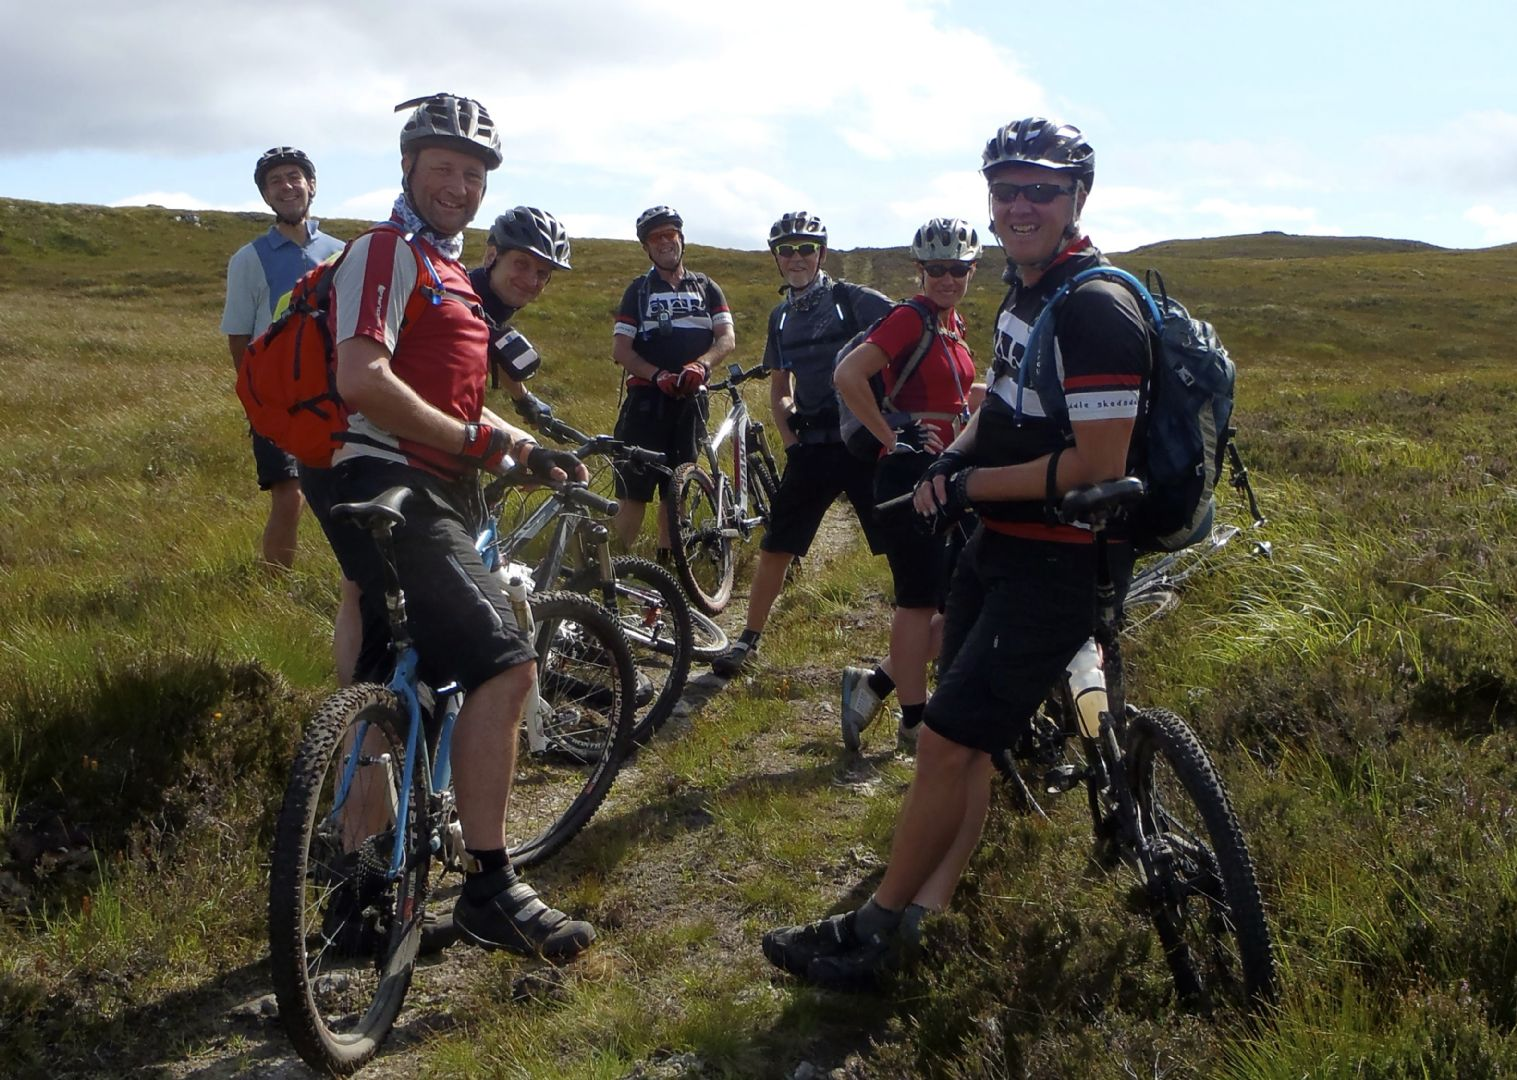 scottish-coast-to-coast-highlands-group-cycling-holiday.jpg - Scotland - Celtic Crossing - Guided Mountain Bike Holiday - Mountain Biking